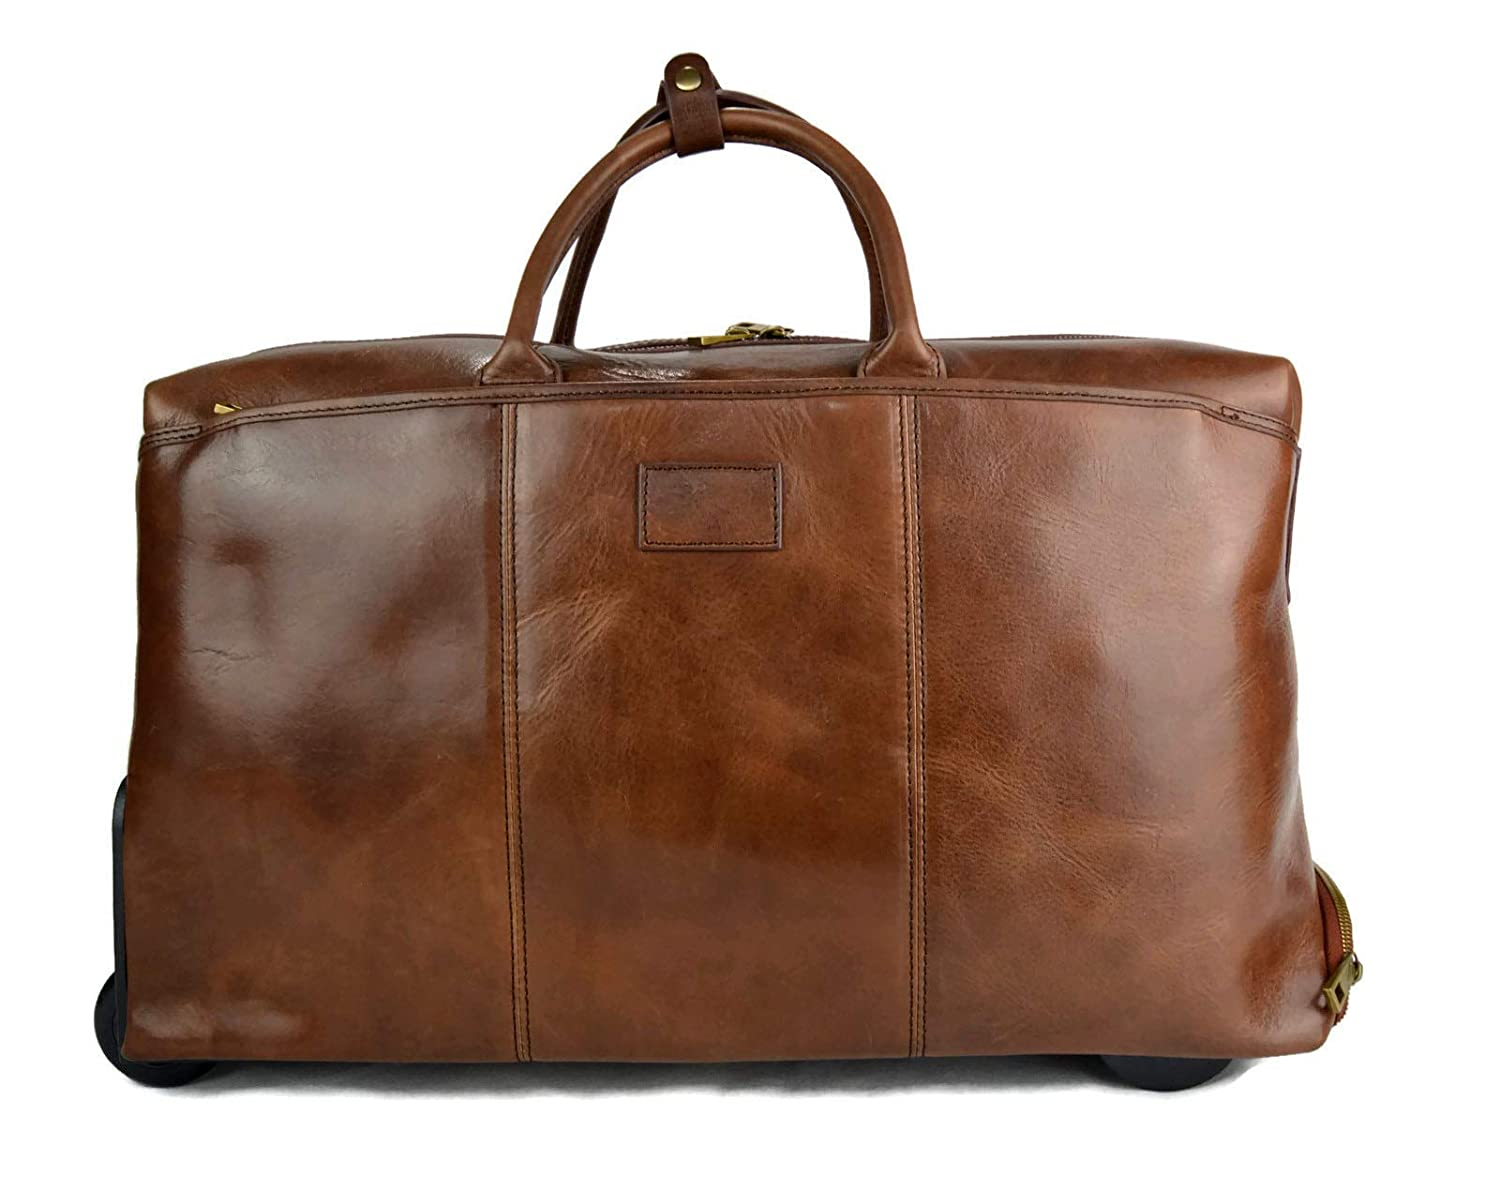 490245122bec Amazon.com  Brown leather duffle trolley travel bag weekender overnight  leather bag with swivel wheels leather cabin luggage airplane carryon gym  bag  ...